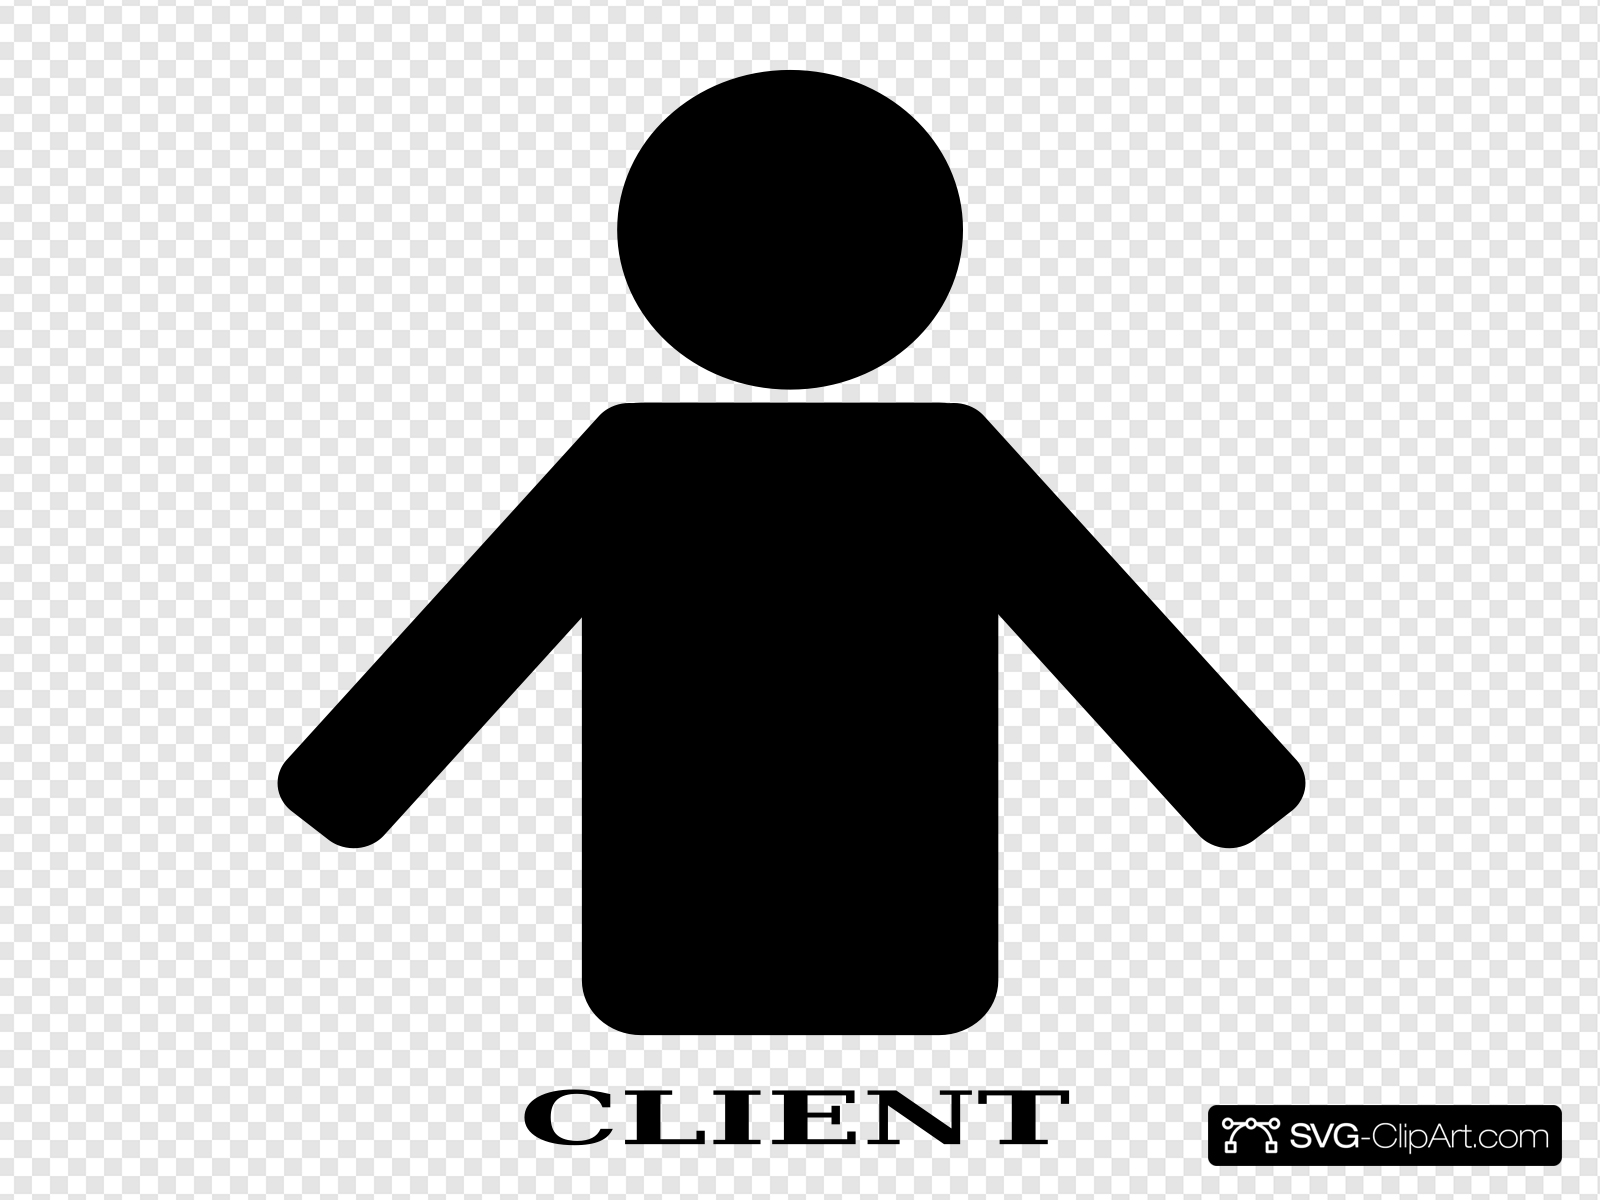 Client Clip art, Icon and SVG.